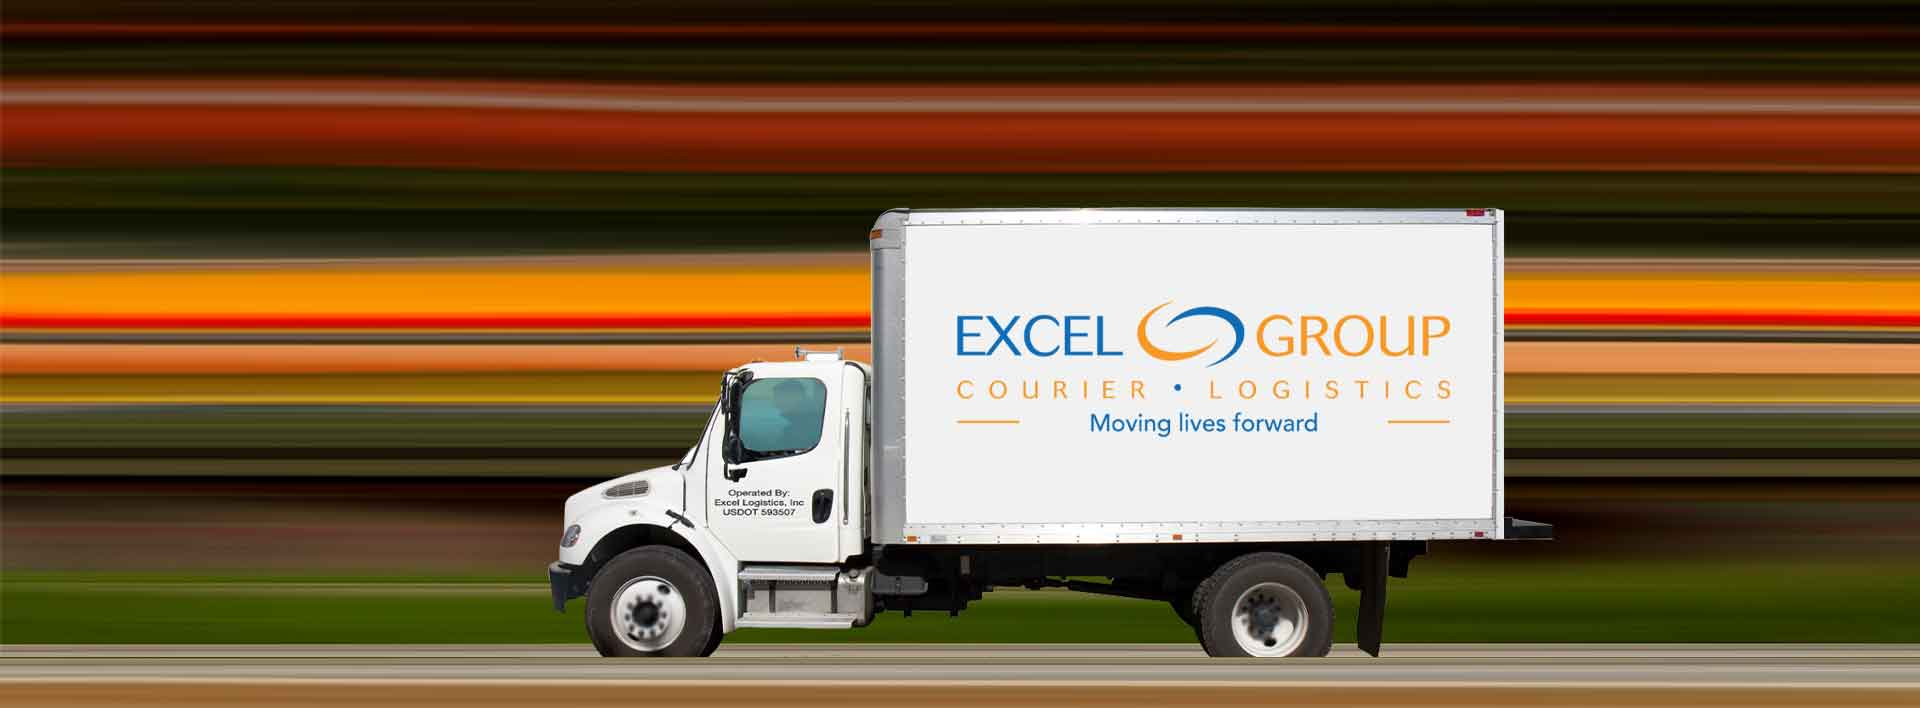 Excel Courier and Logistics truck driving down the road